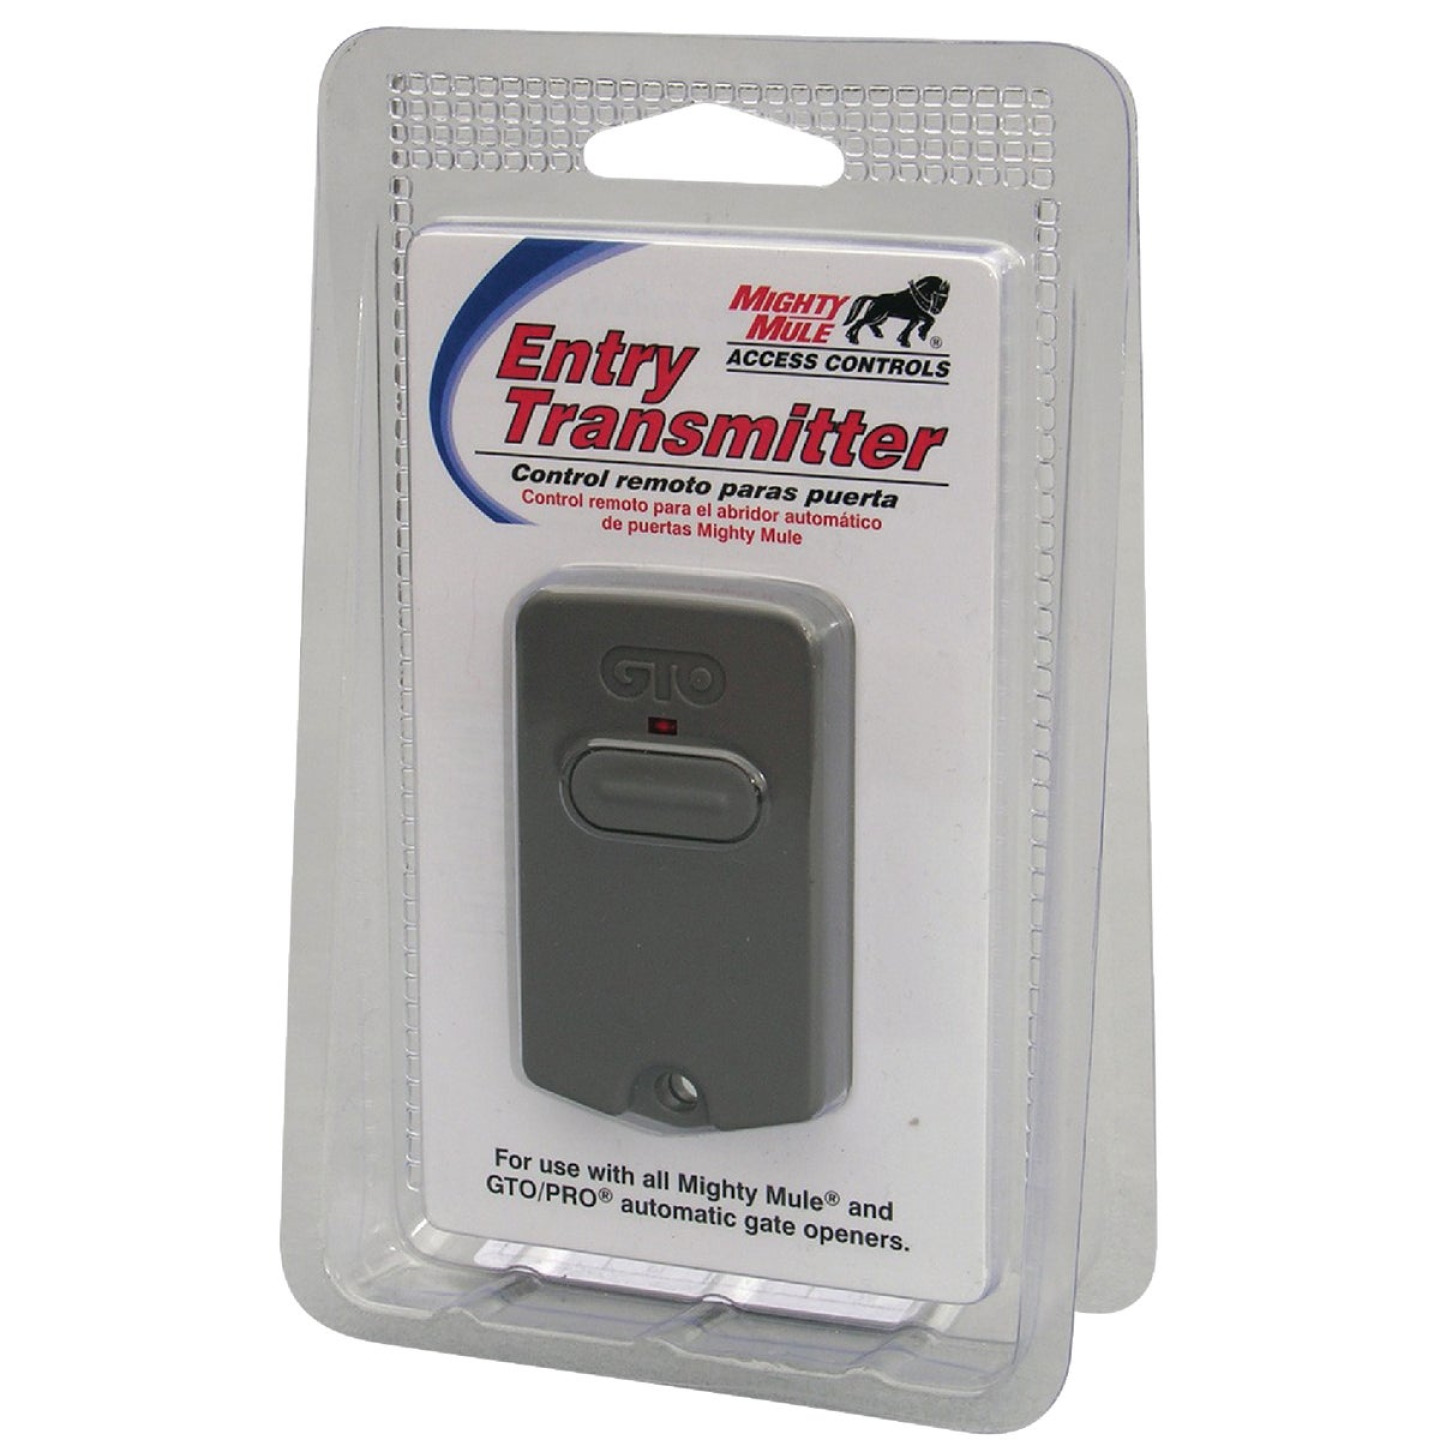 Might Mule Remote 3-Button Entry Transmitter Image 1